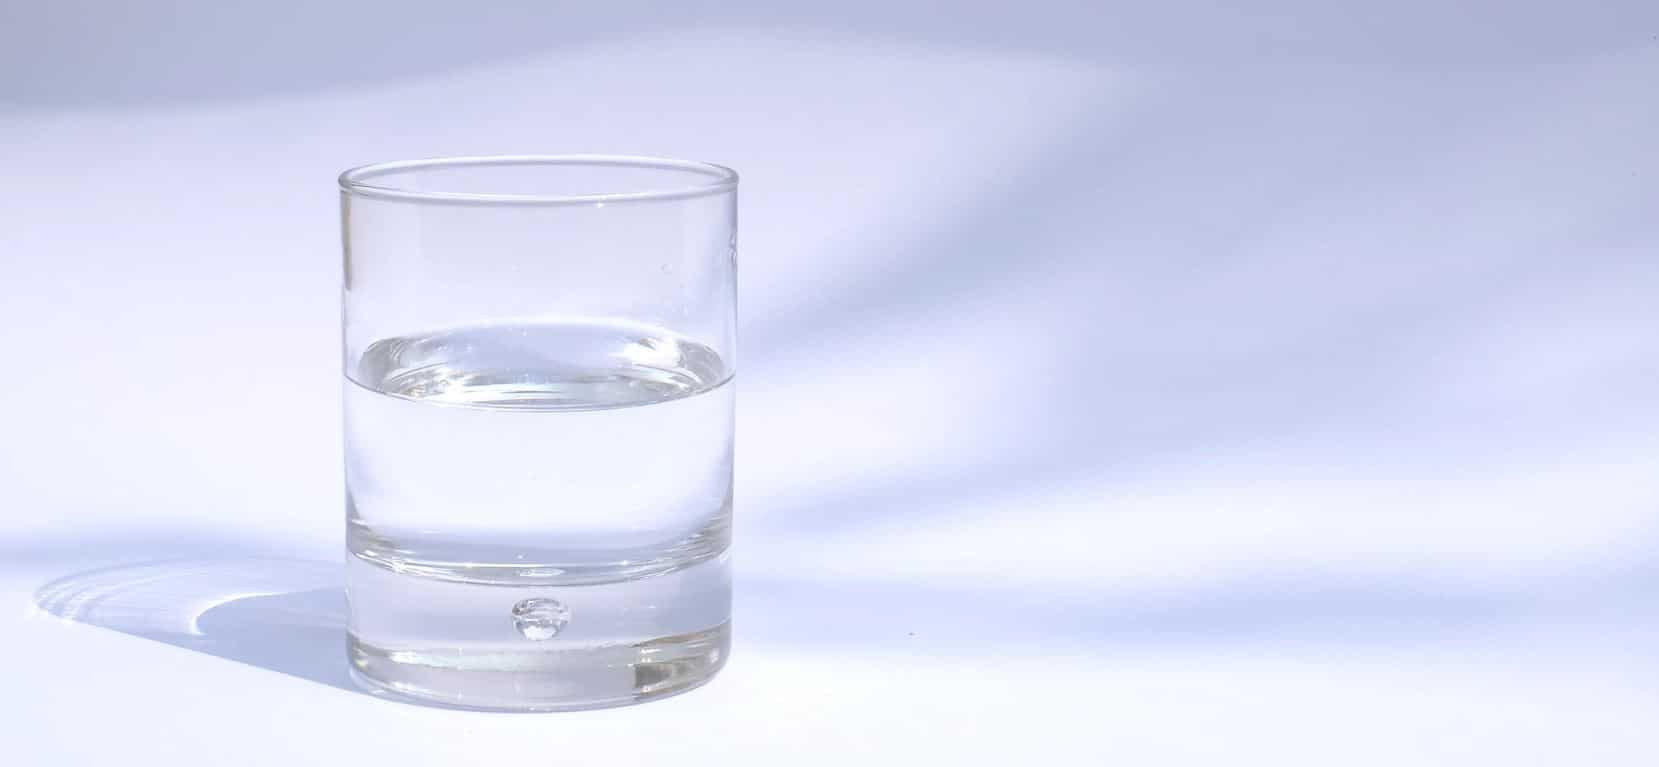 glass half full optimism how to not let things bother you